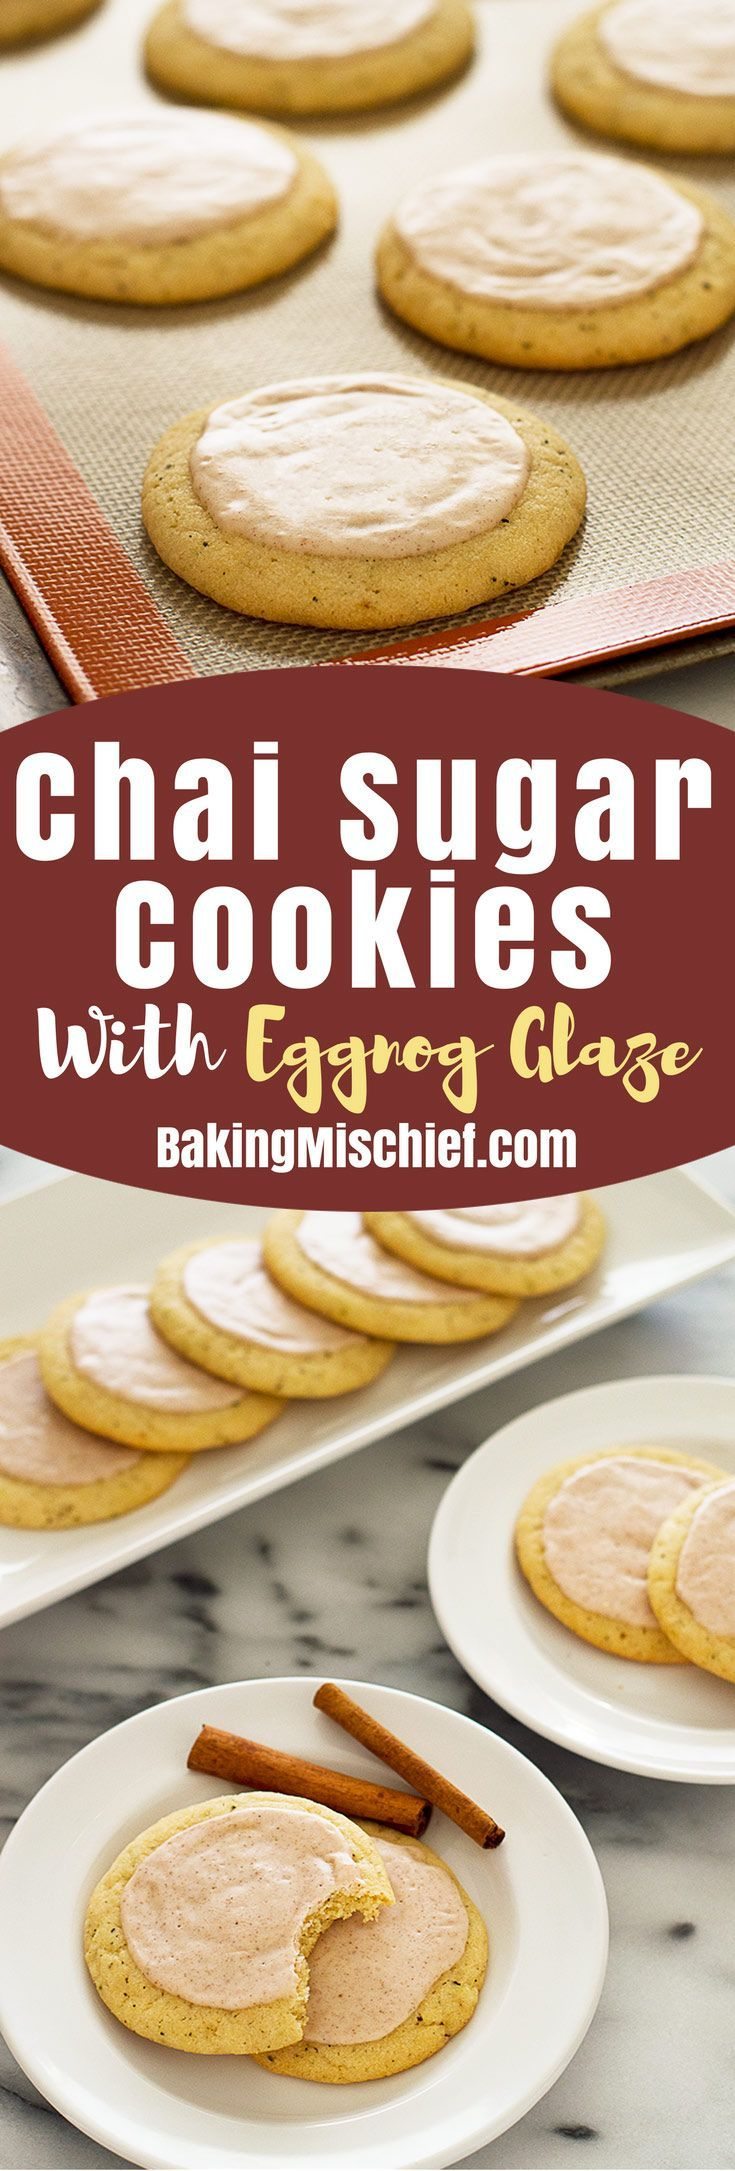 Chai sugar cookies with eggnog glaze might just be the perfect Christmas cookie. Recipe includes nutritional information. From http://BakingMischief.com